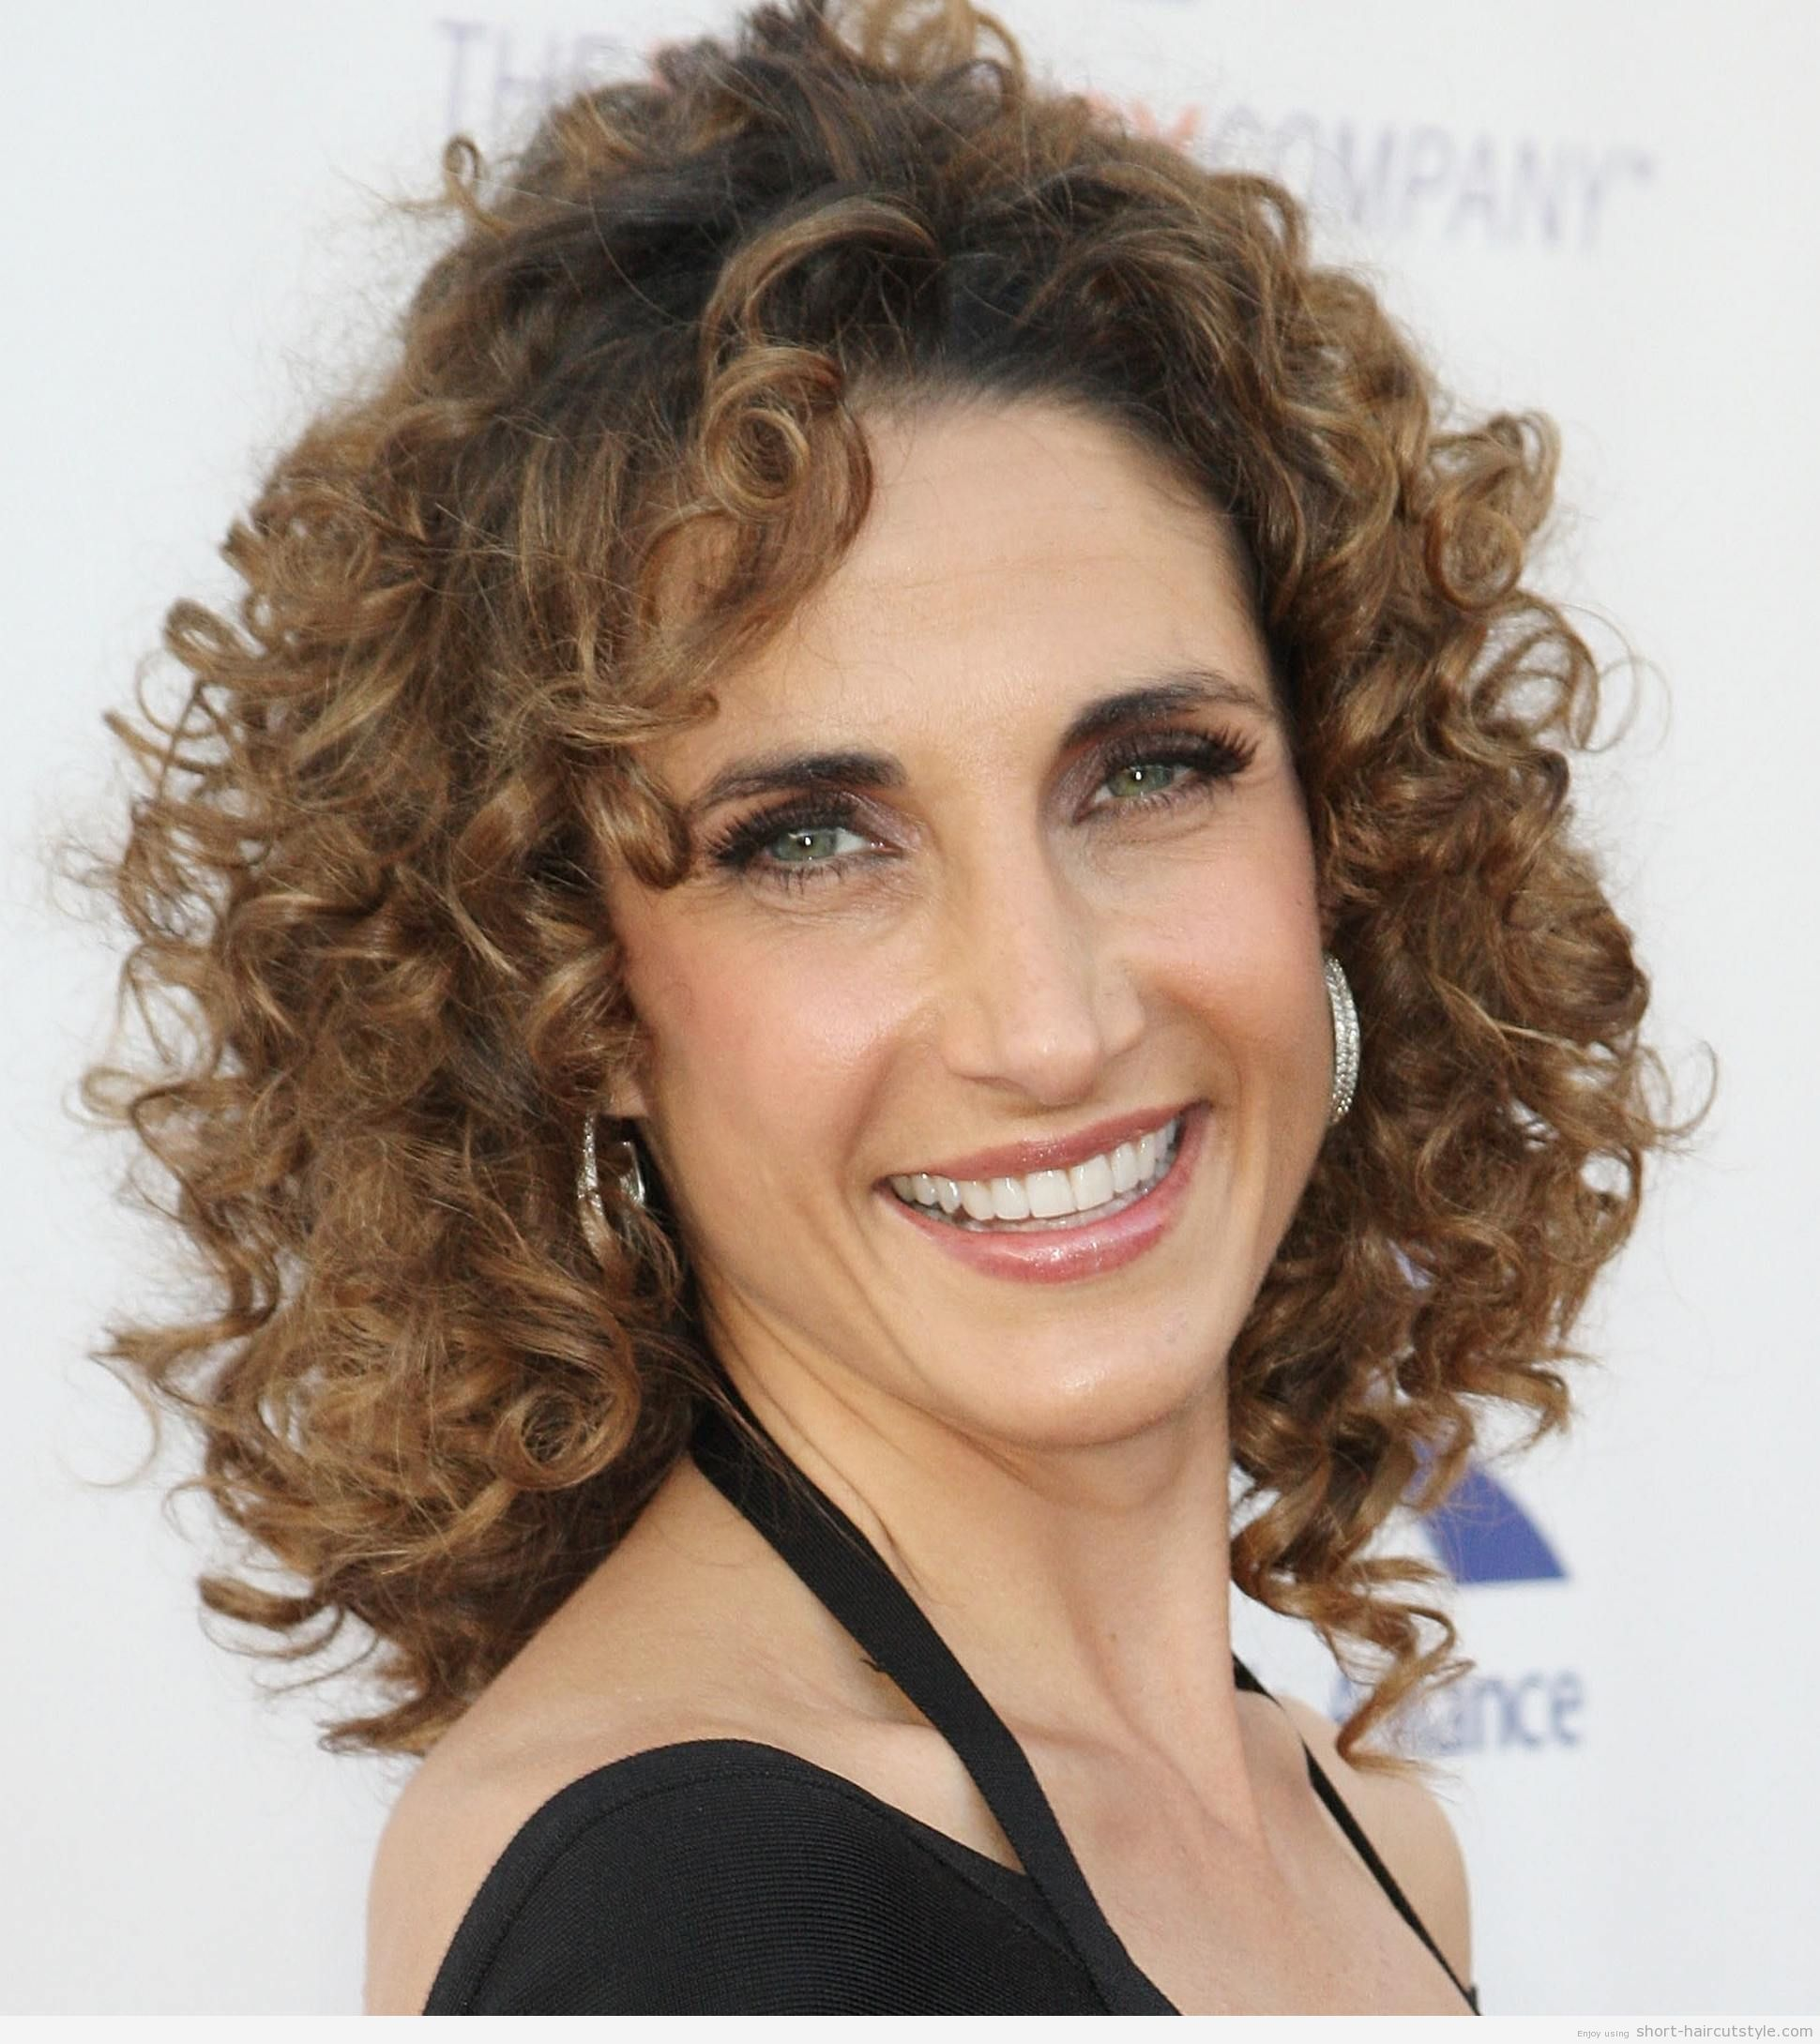 Short Hair Styles For Women Over 40 Short Curly Hairstyles For Women Over 50 With Images Short Curly Hairstyles For Women Curly Hair Styles Naturally Curly Hair Women